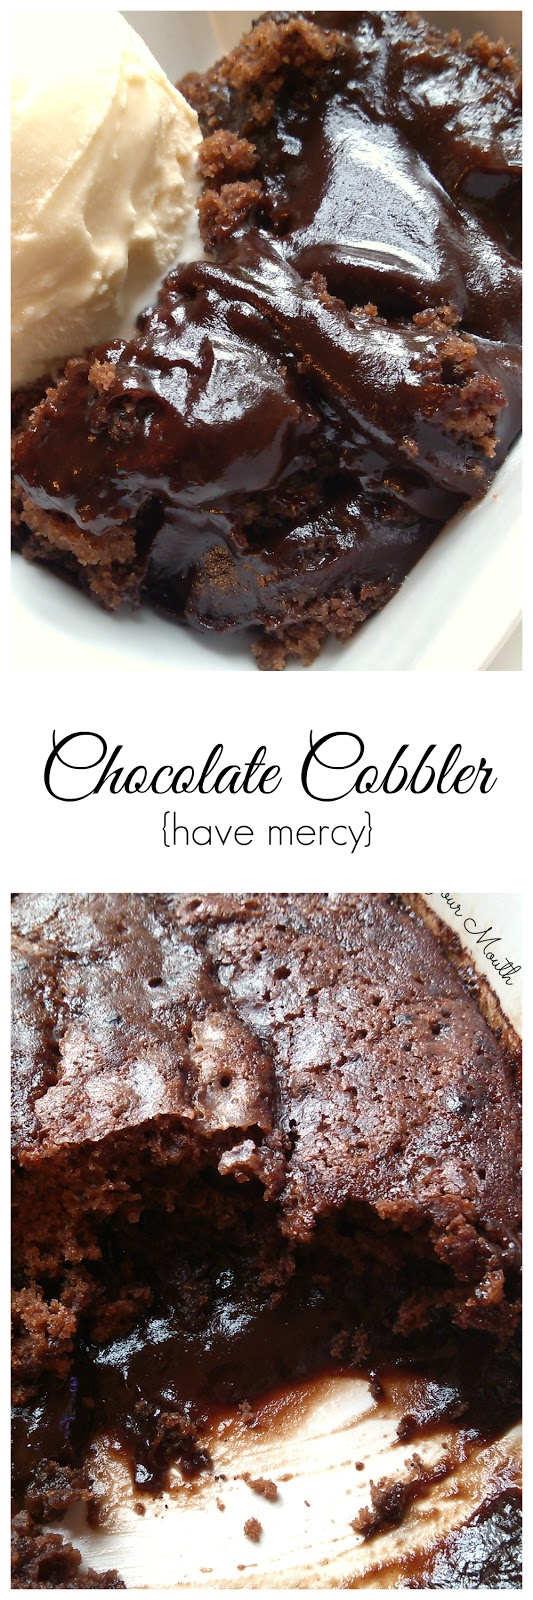 South Your Mouth: Chocolate Cobbler